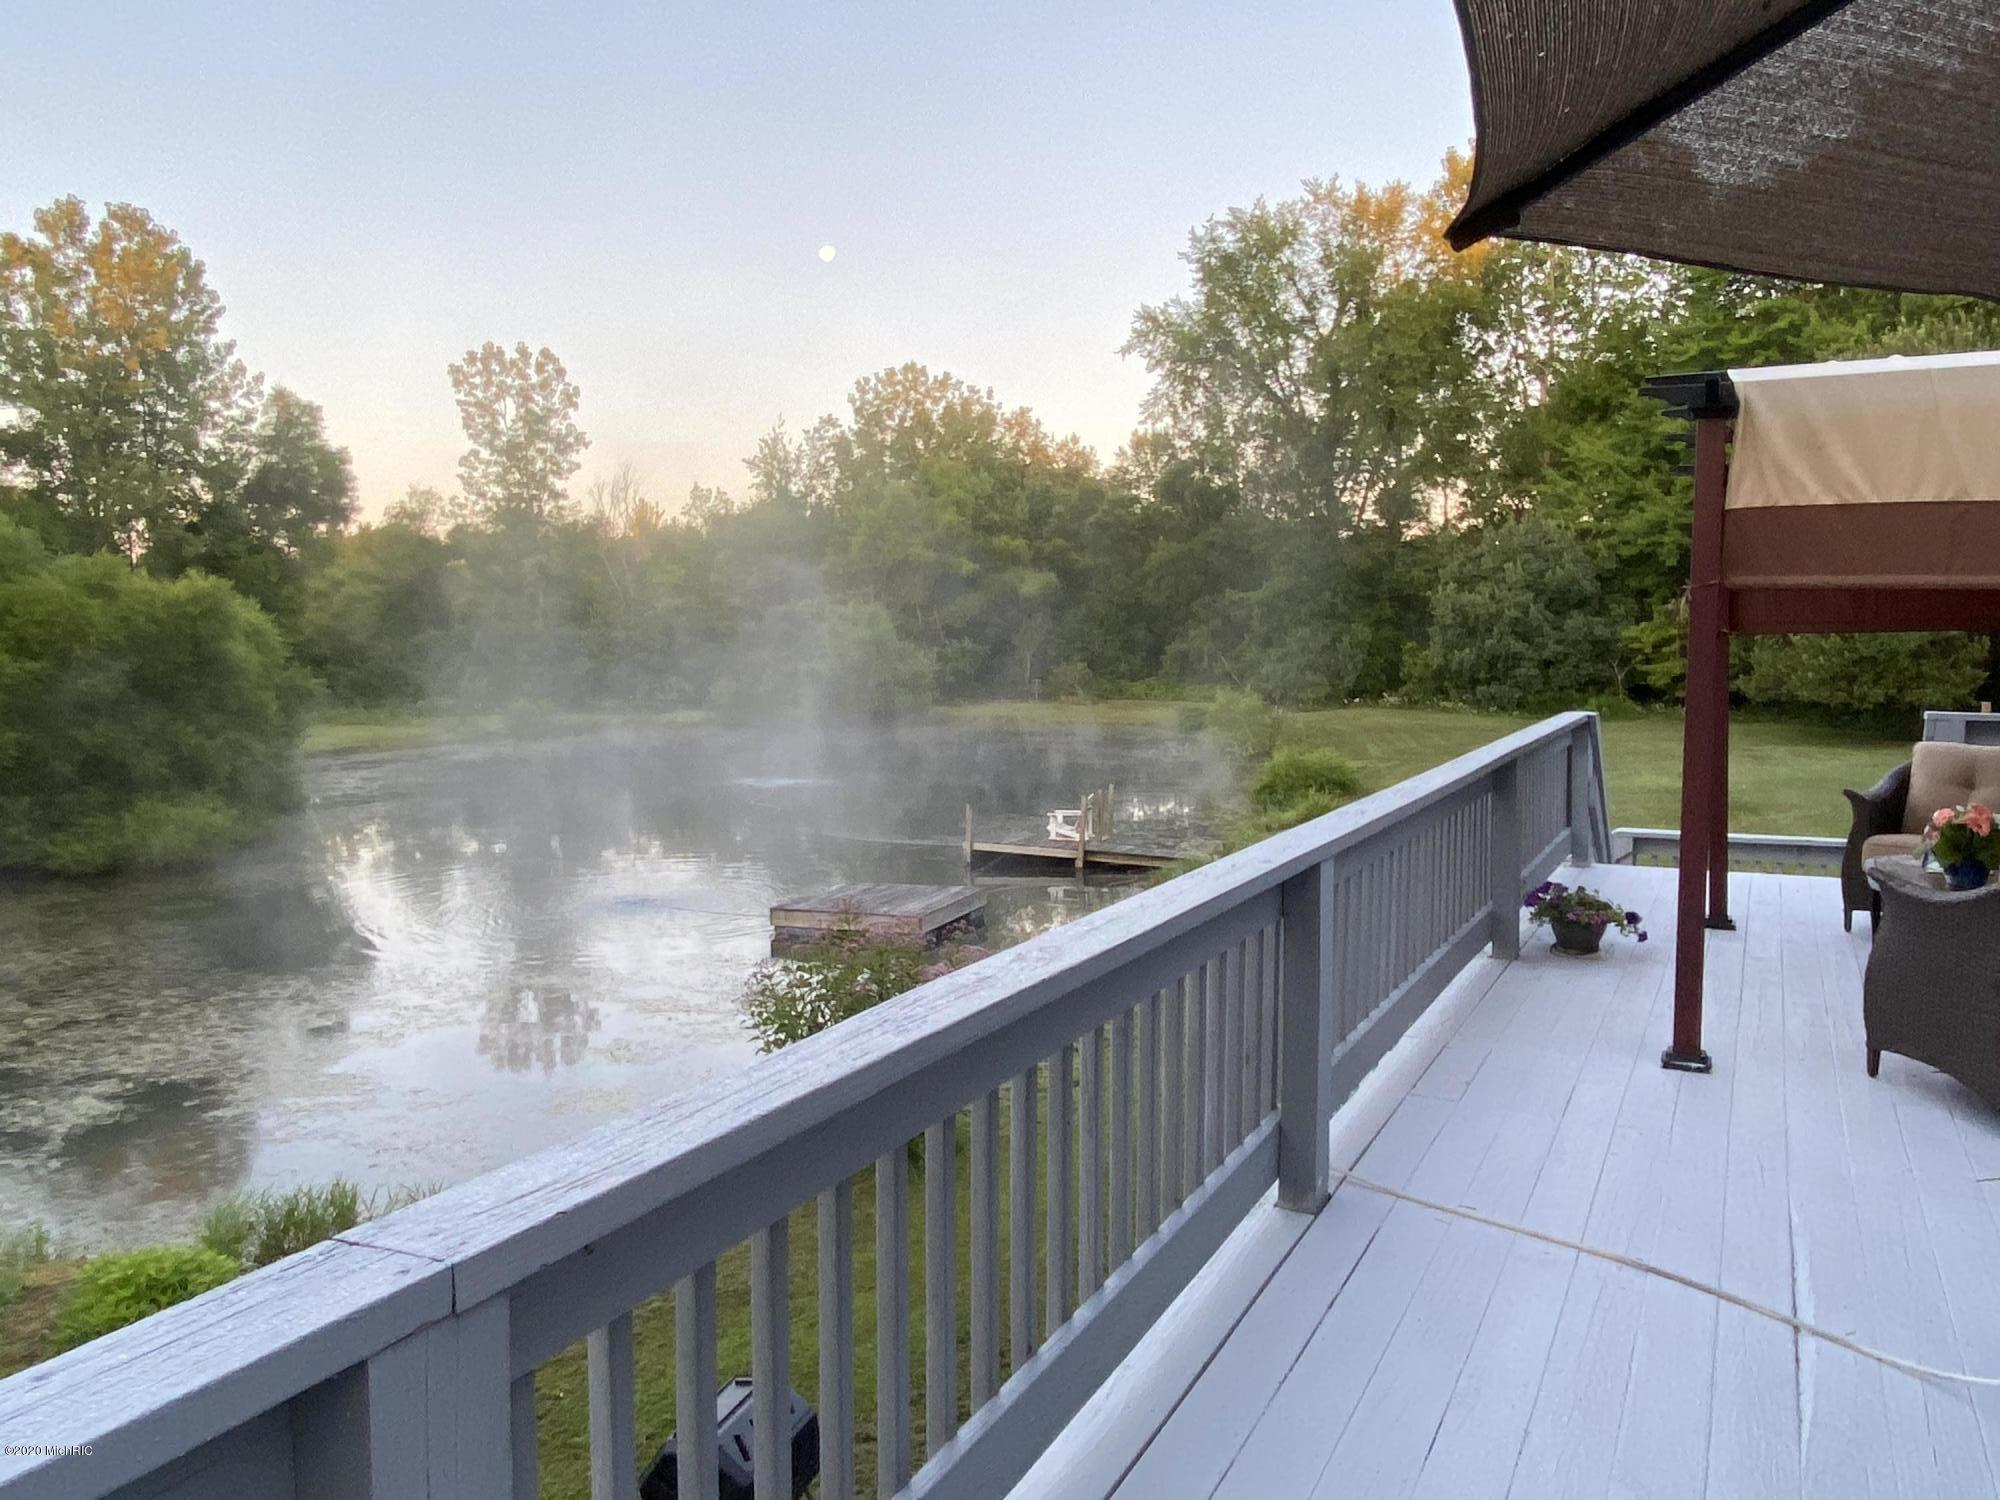 32 Morning Mist on the pond